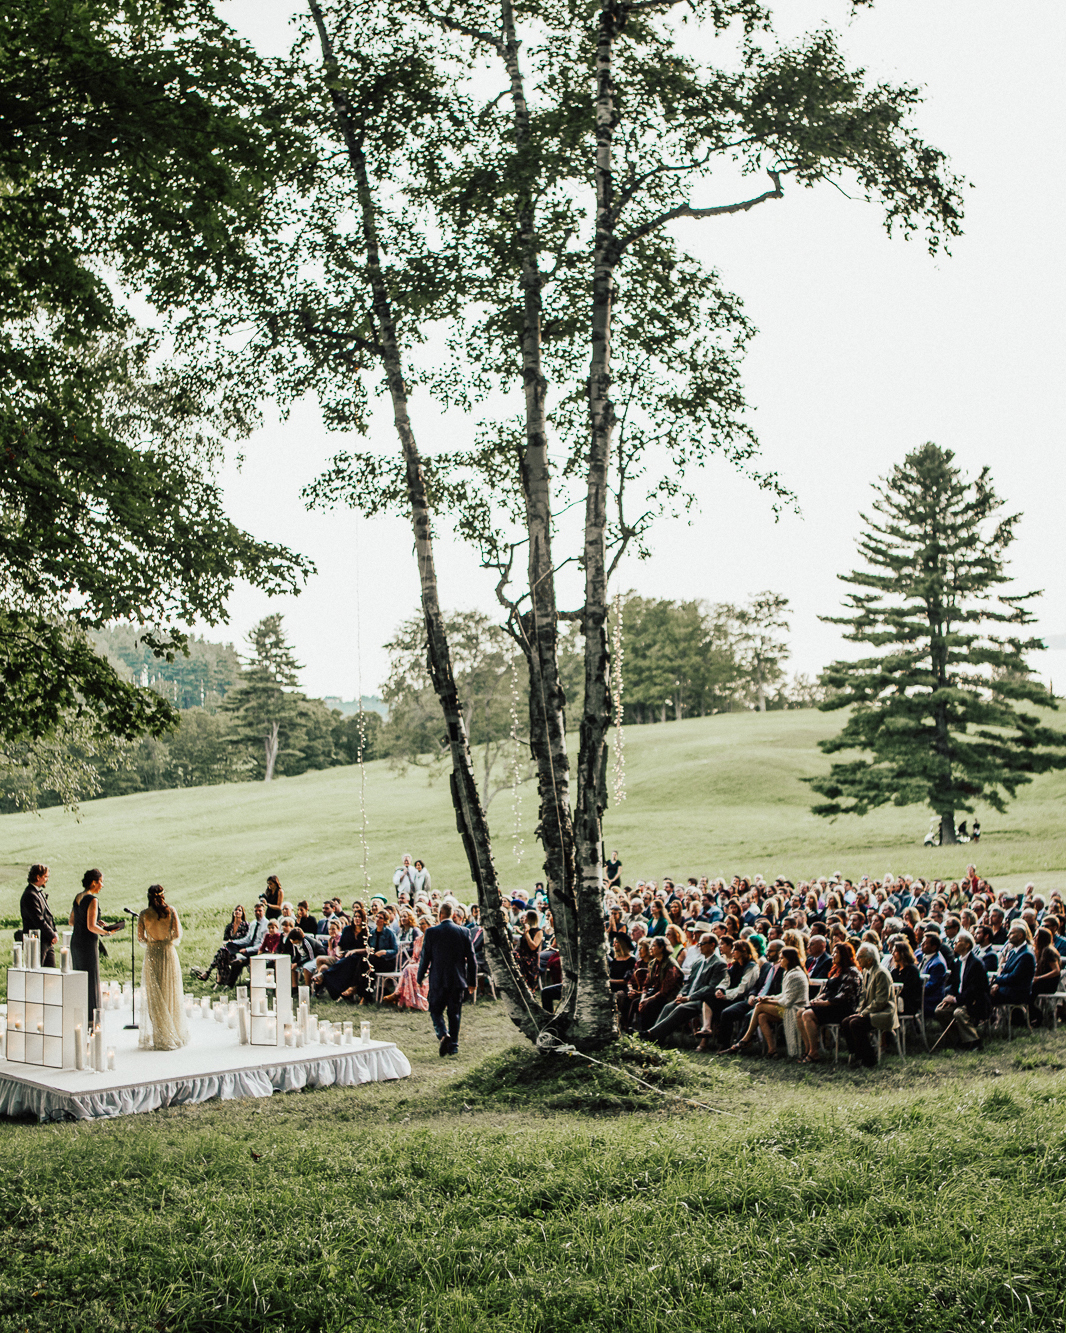 birch grove outdoor wedding ceremony space